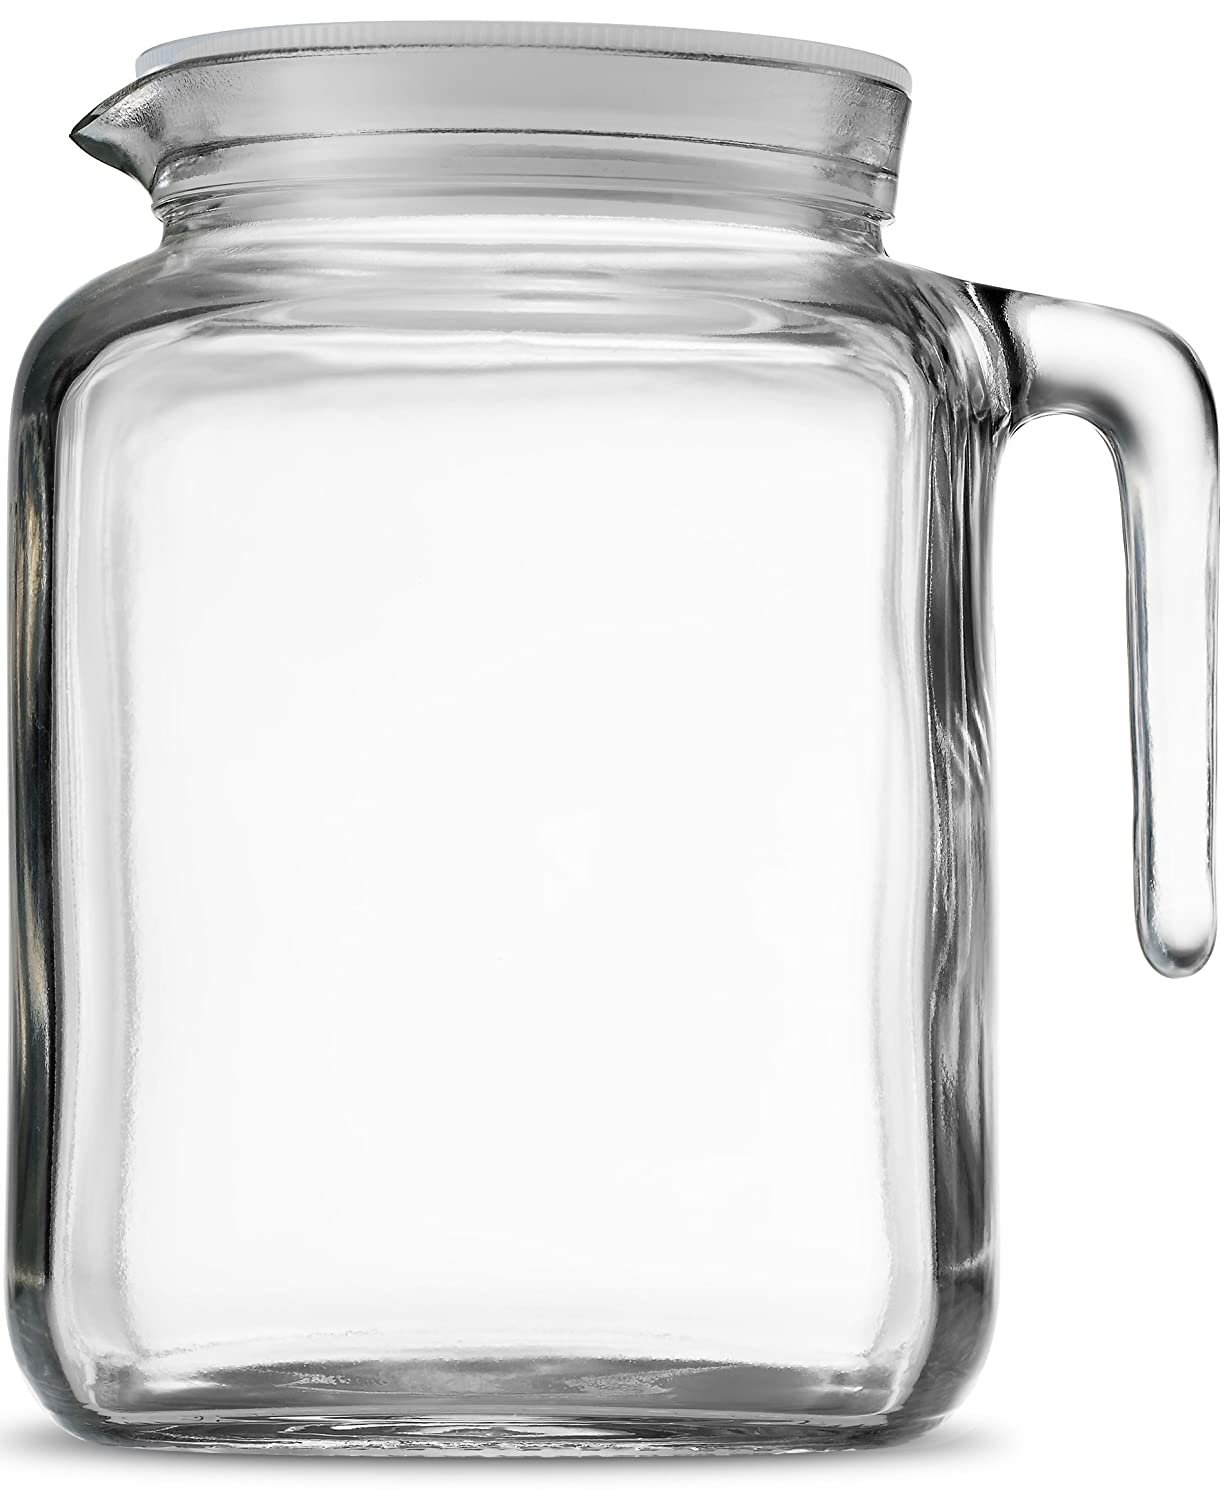 Bormioli Rocco Hermetic Seal Glass Pitcher With Lid and Spout [68 Ounce] Great for Homemade Juice & Cold Tea or for Glass Milk Bottles